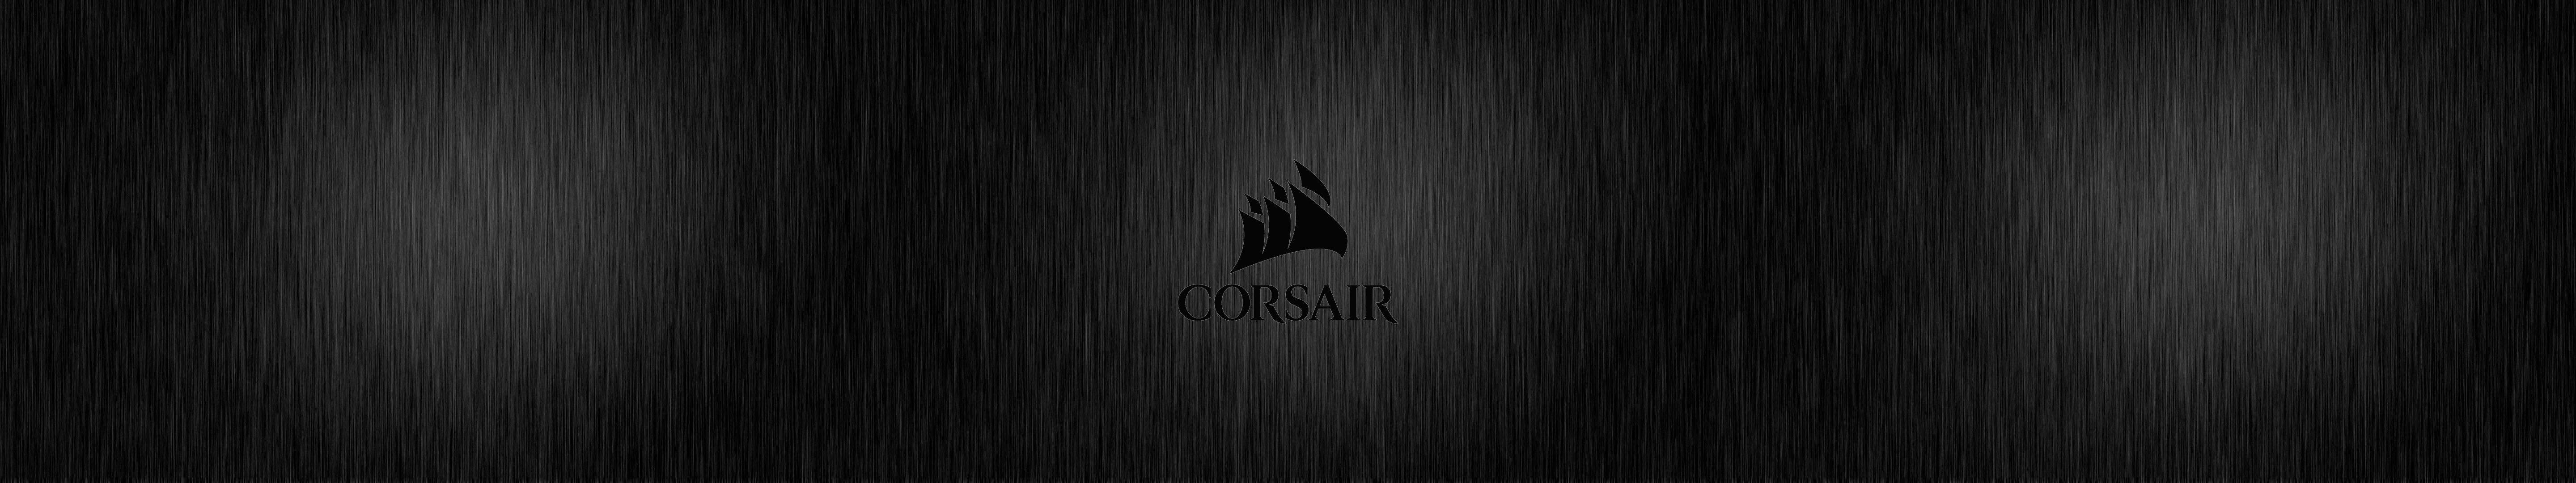 Corsair Wallpapers Top Free Corsair Backgrounds Wallpaperaccess